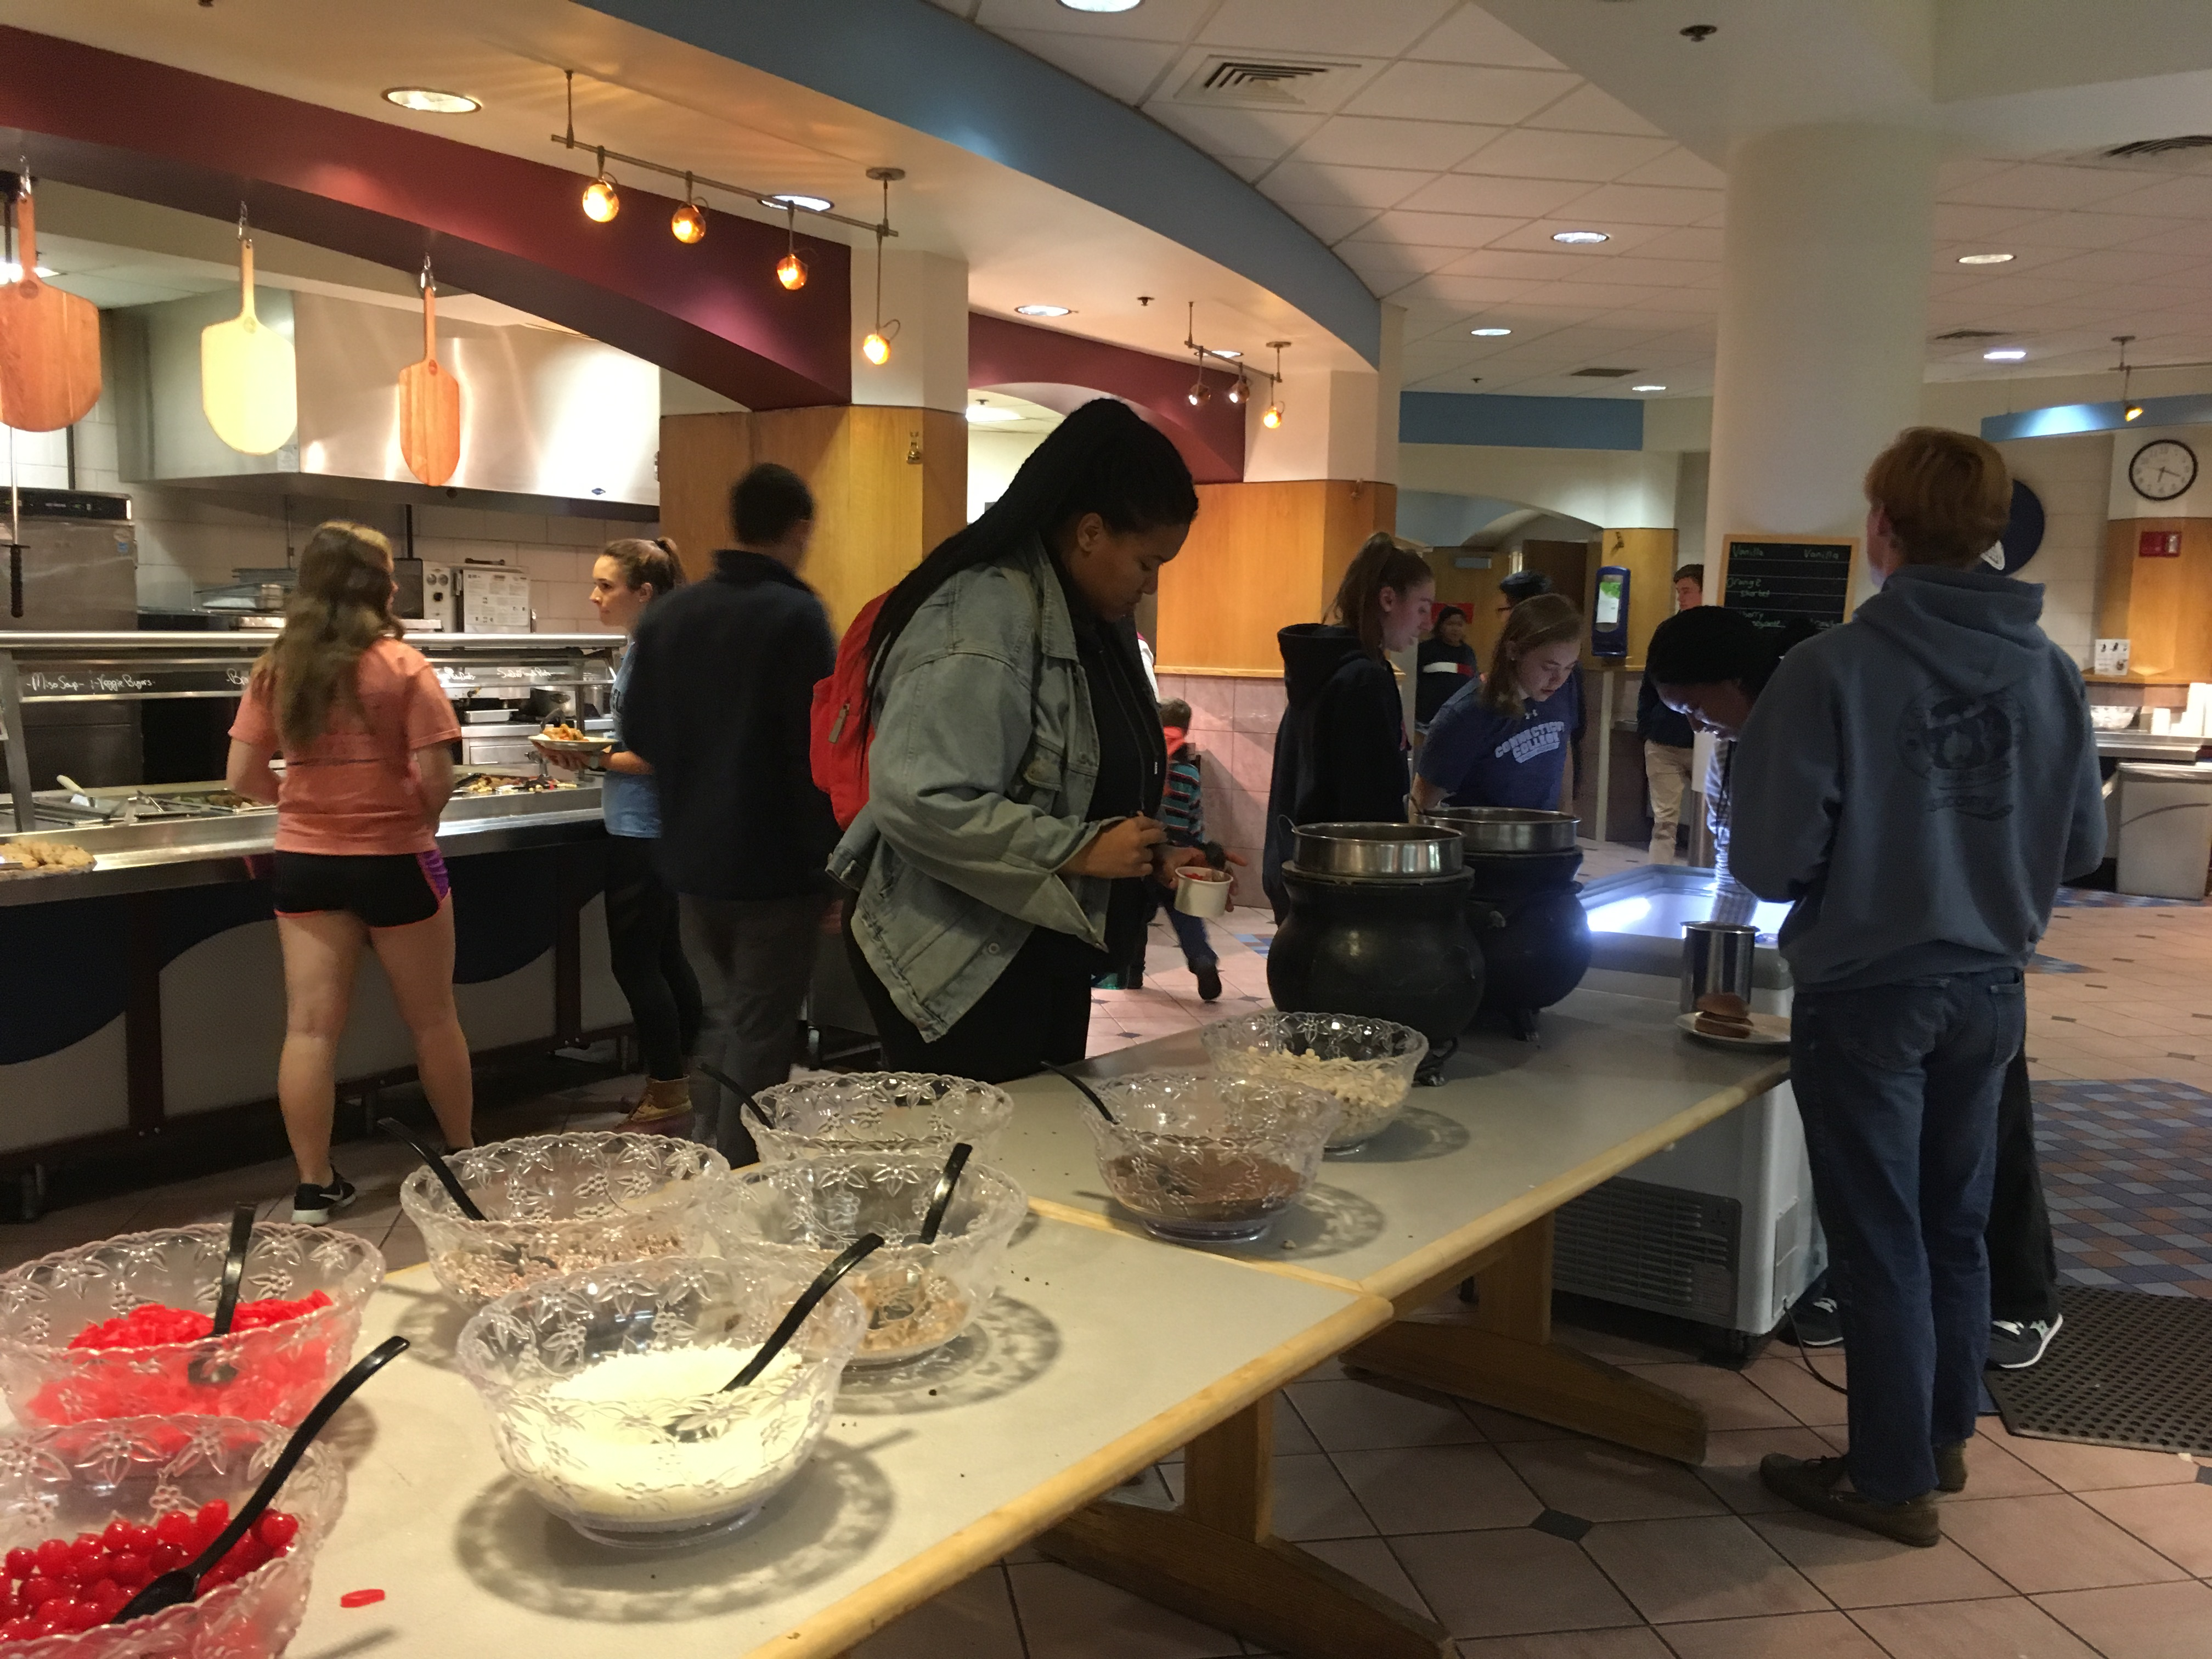 Students pour toppings on top of their sundae's at Harris Dining Hall's Sundae Sunday event